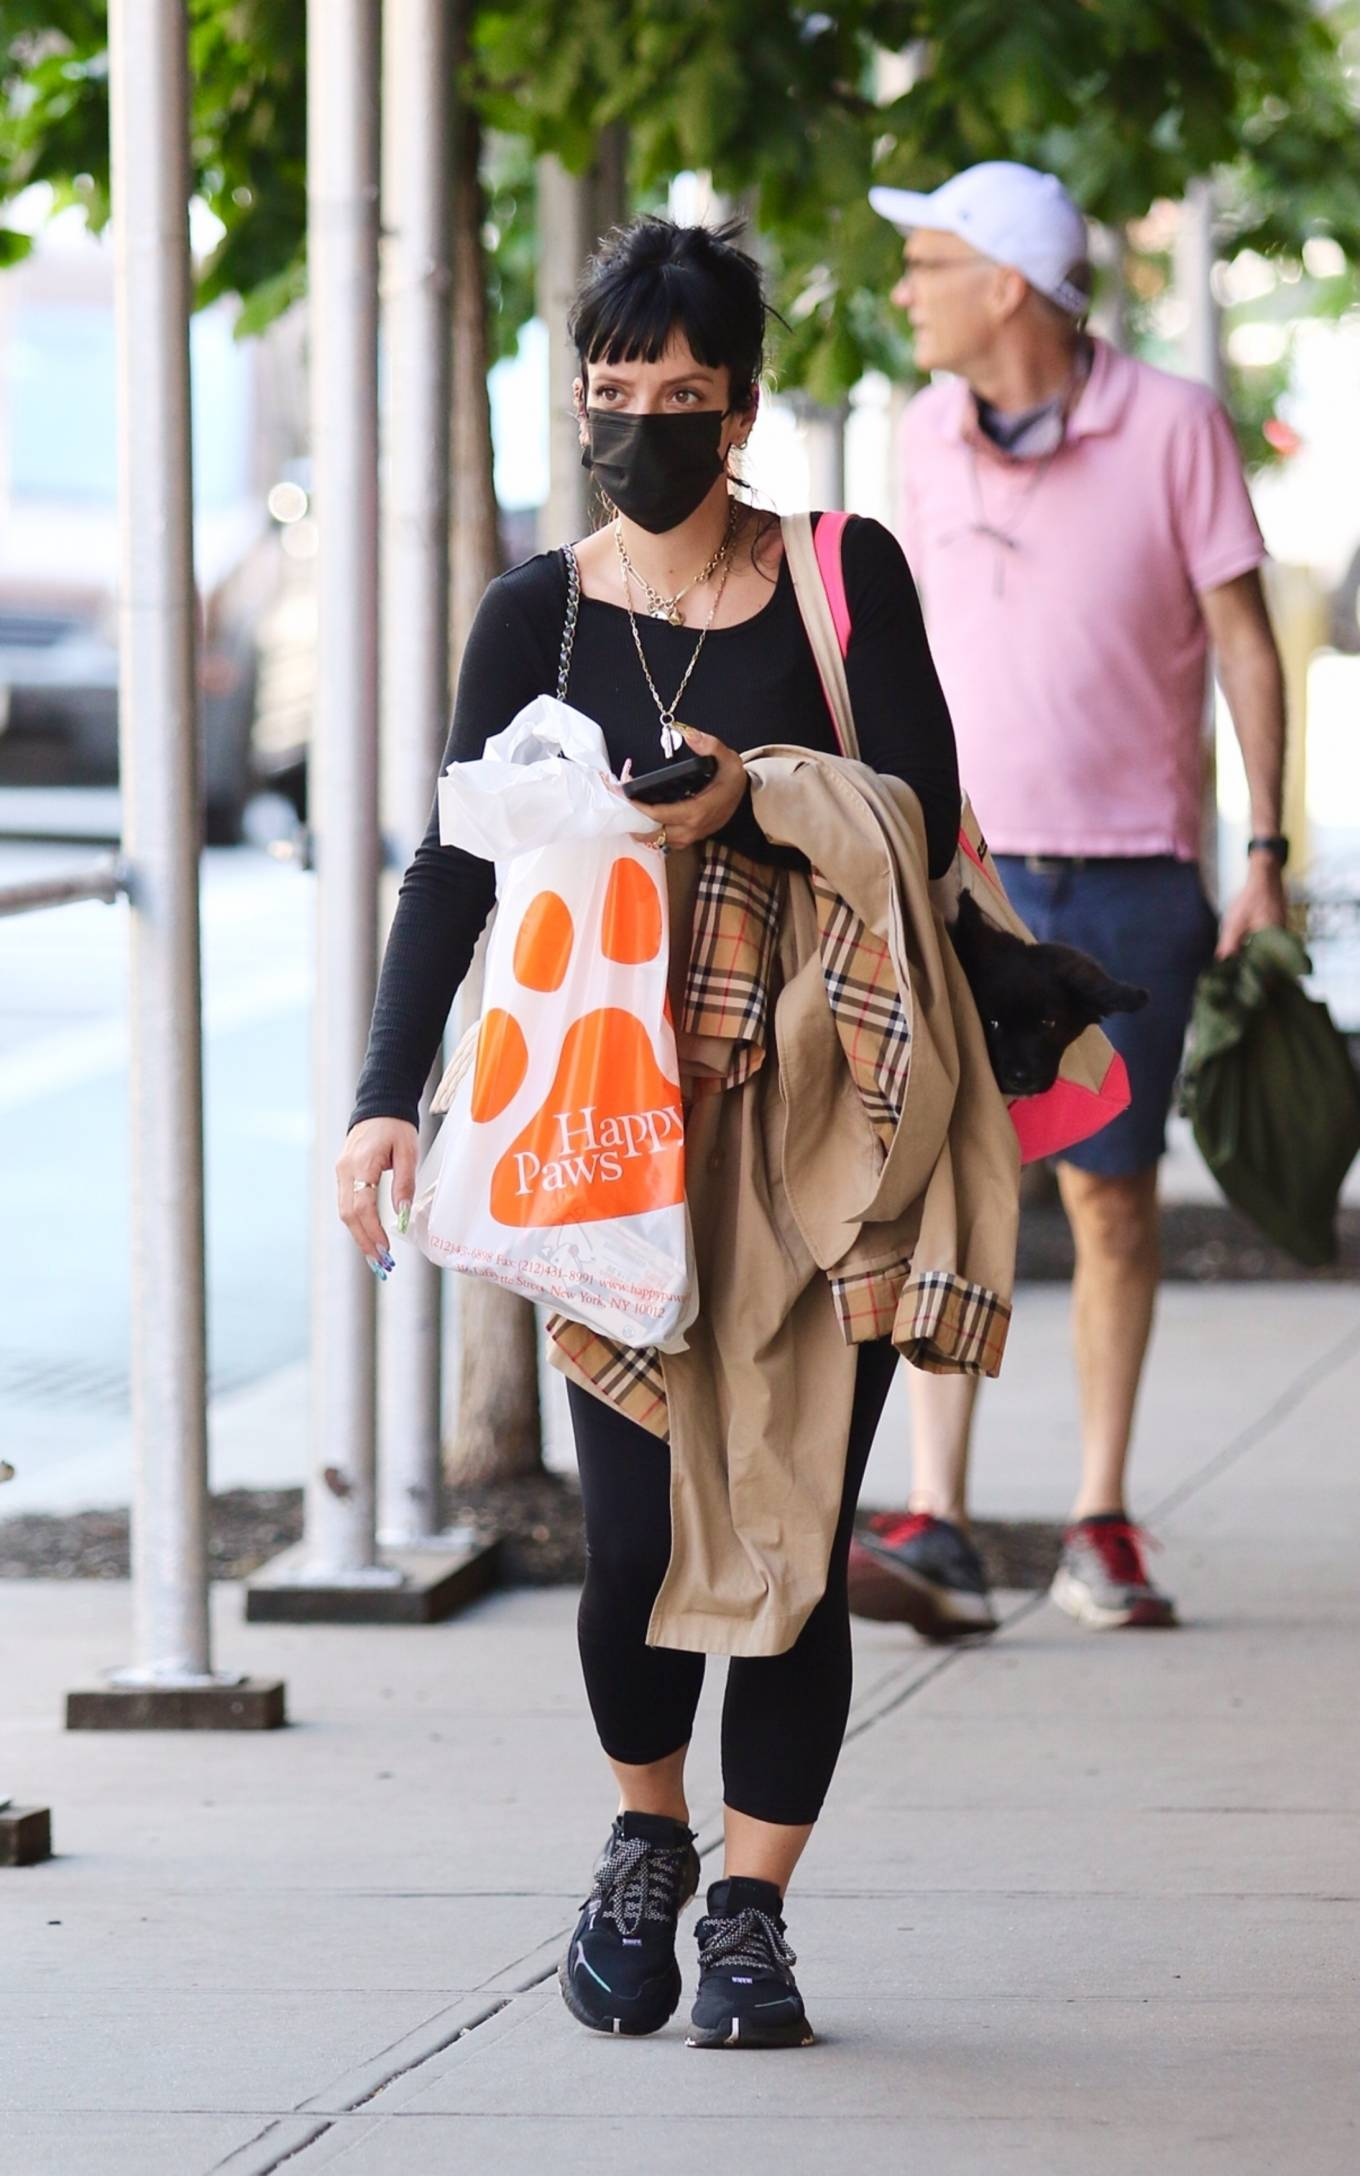 Lily Allen 2021 : Lily Allen – Shopping at Happy Paws pet store in Downtown Manhattan-10